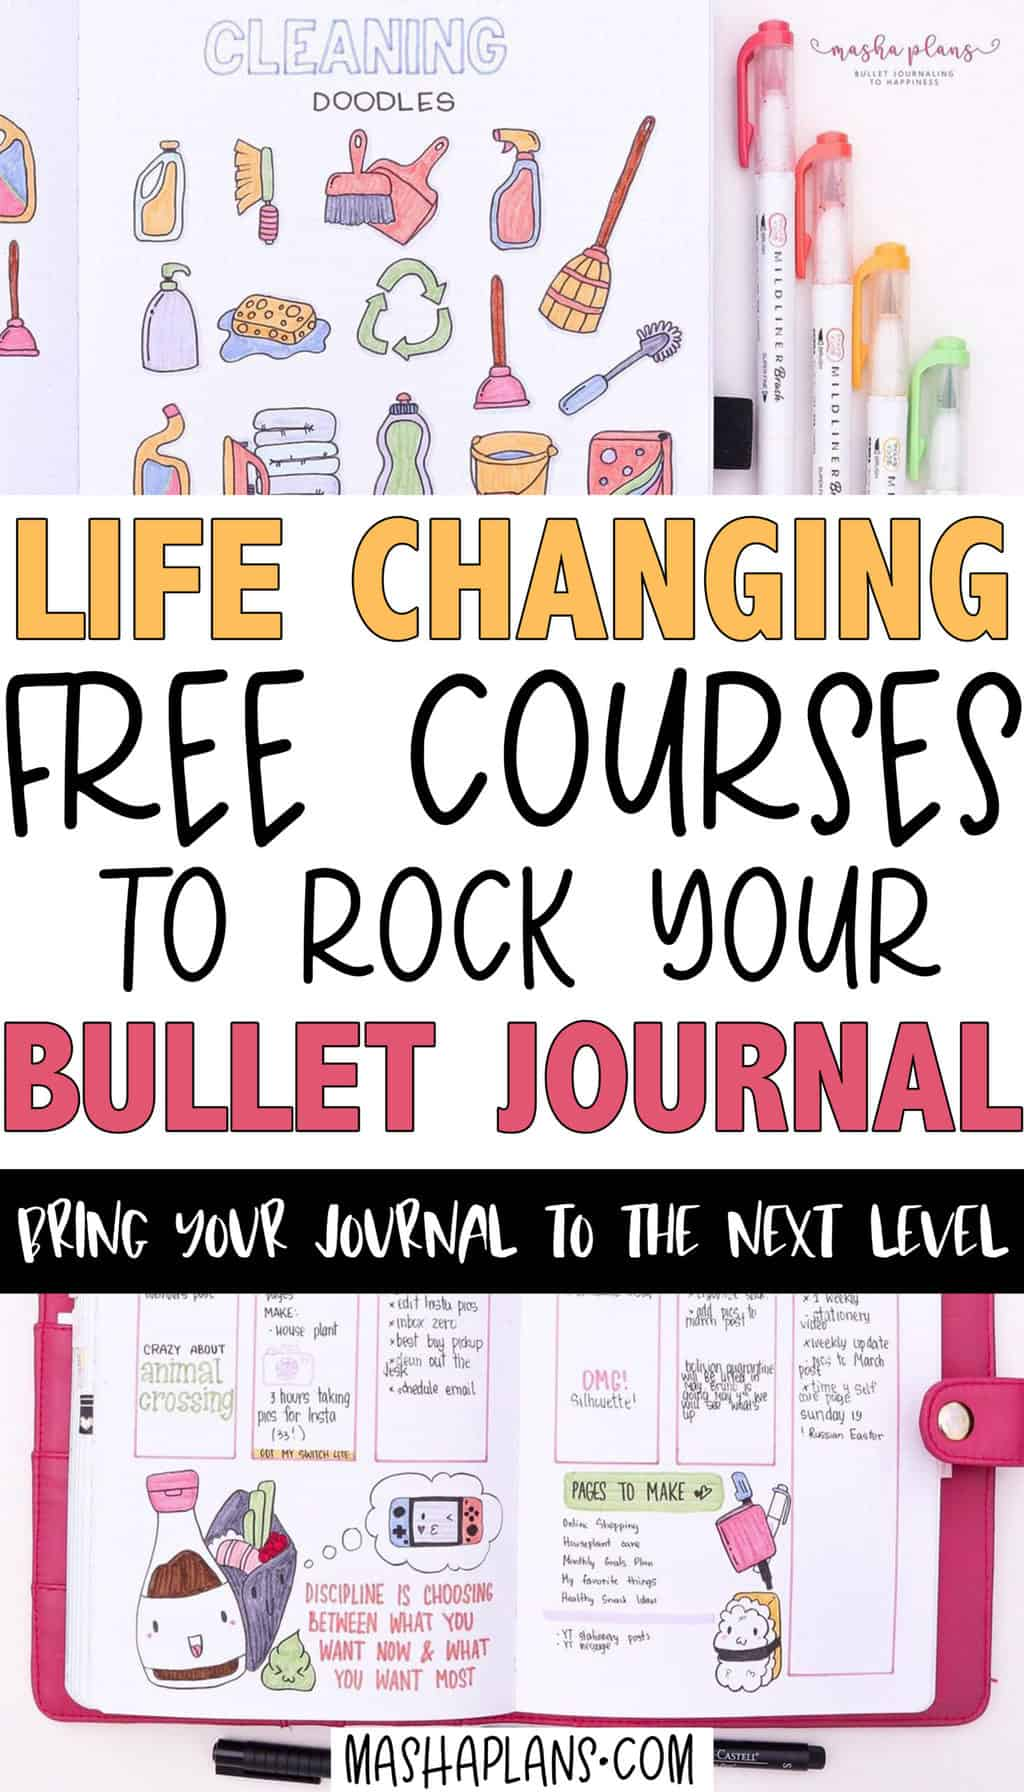 Free Courses To Improve Your Bullet Journal Skills | Masha Plans